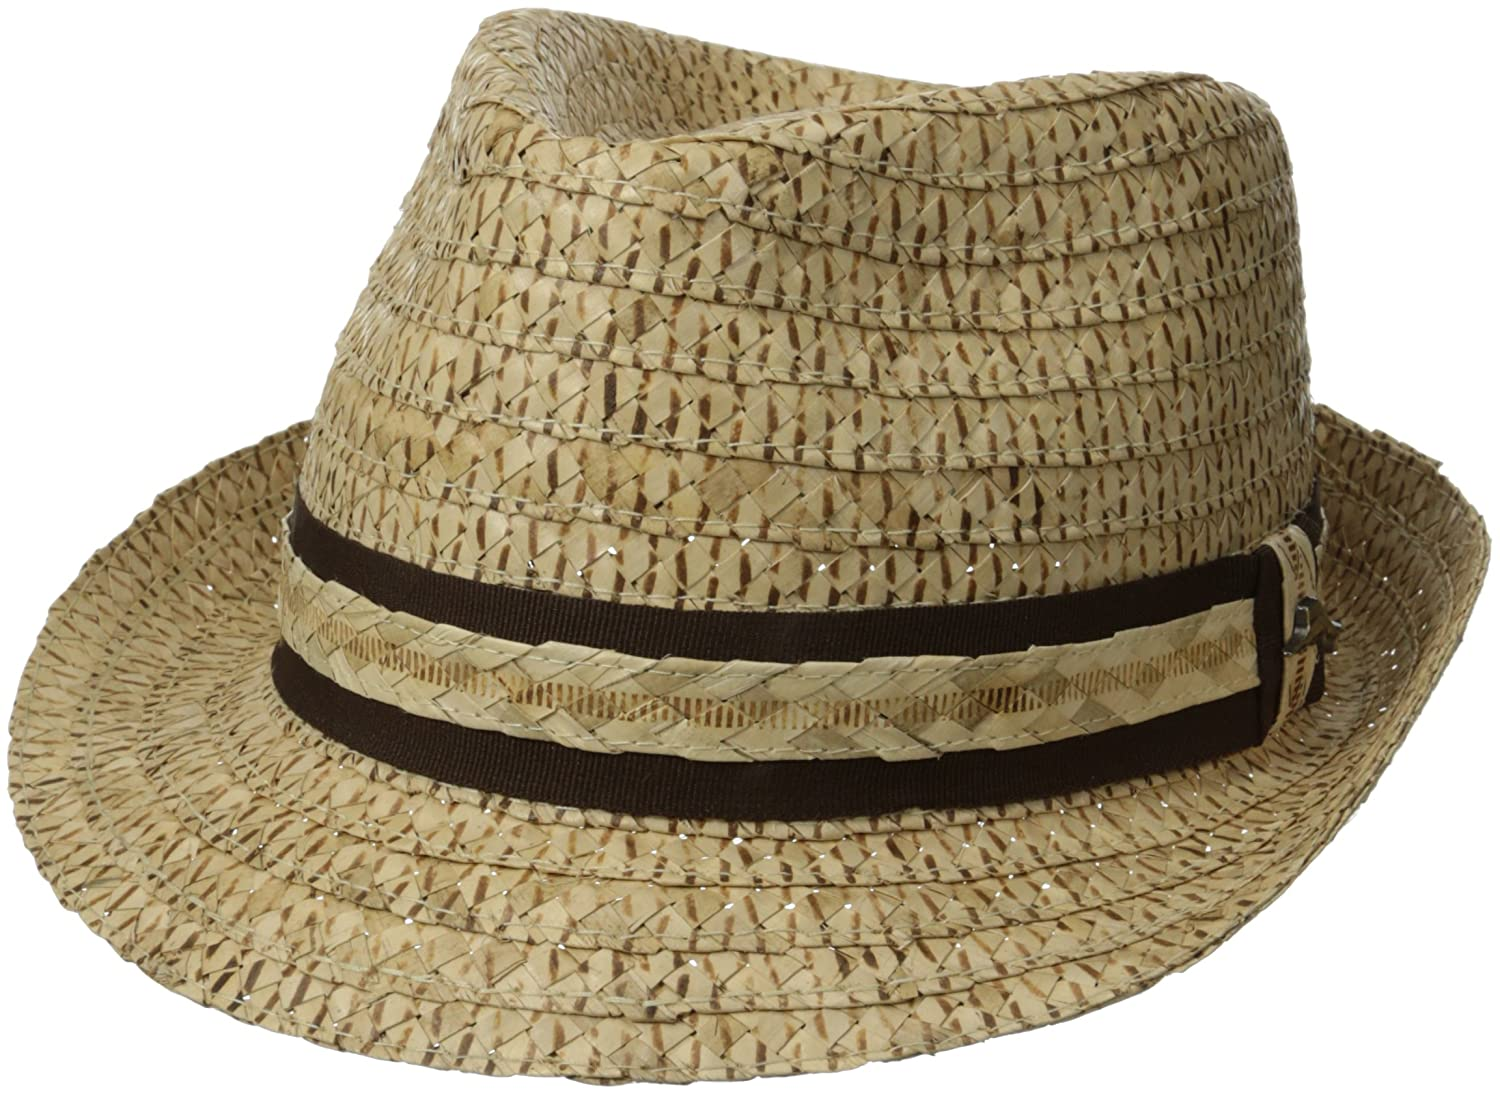 Tommy Bahama Men s Buri Braid Raffia Hat at Amazon Men s Clothing store  461d9304bef